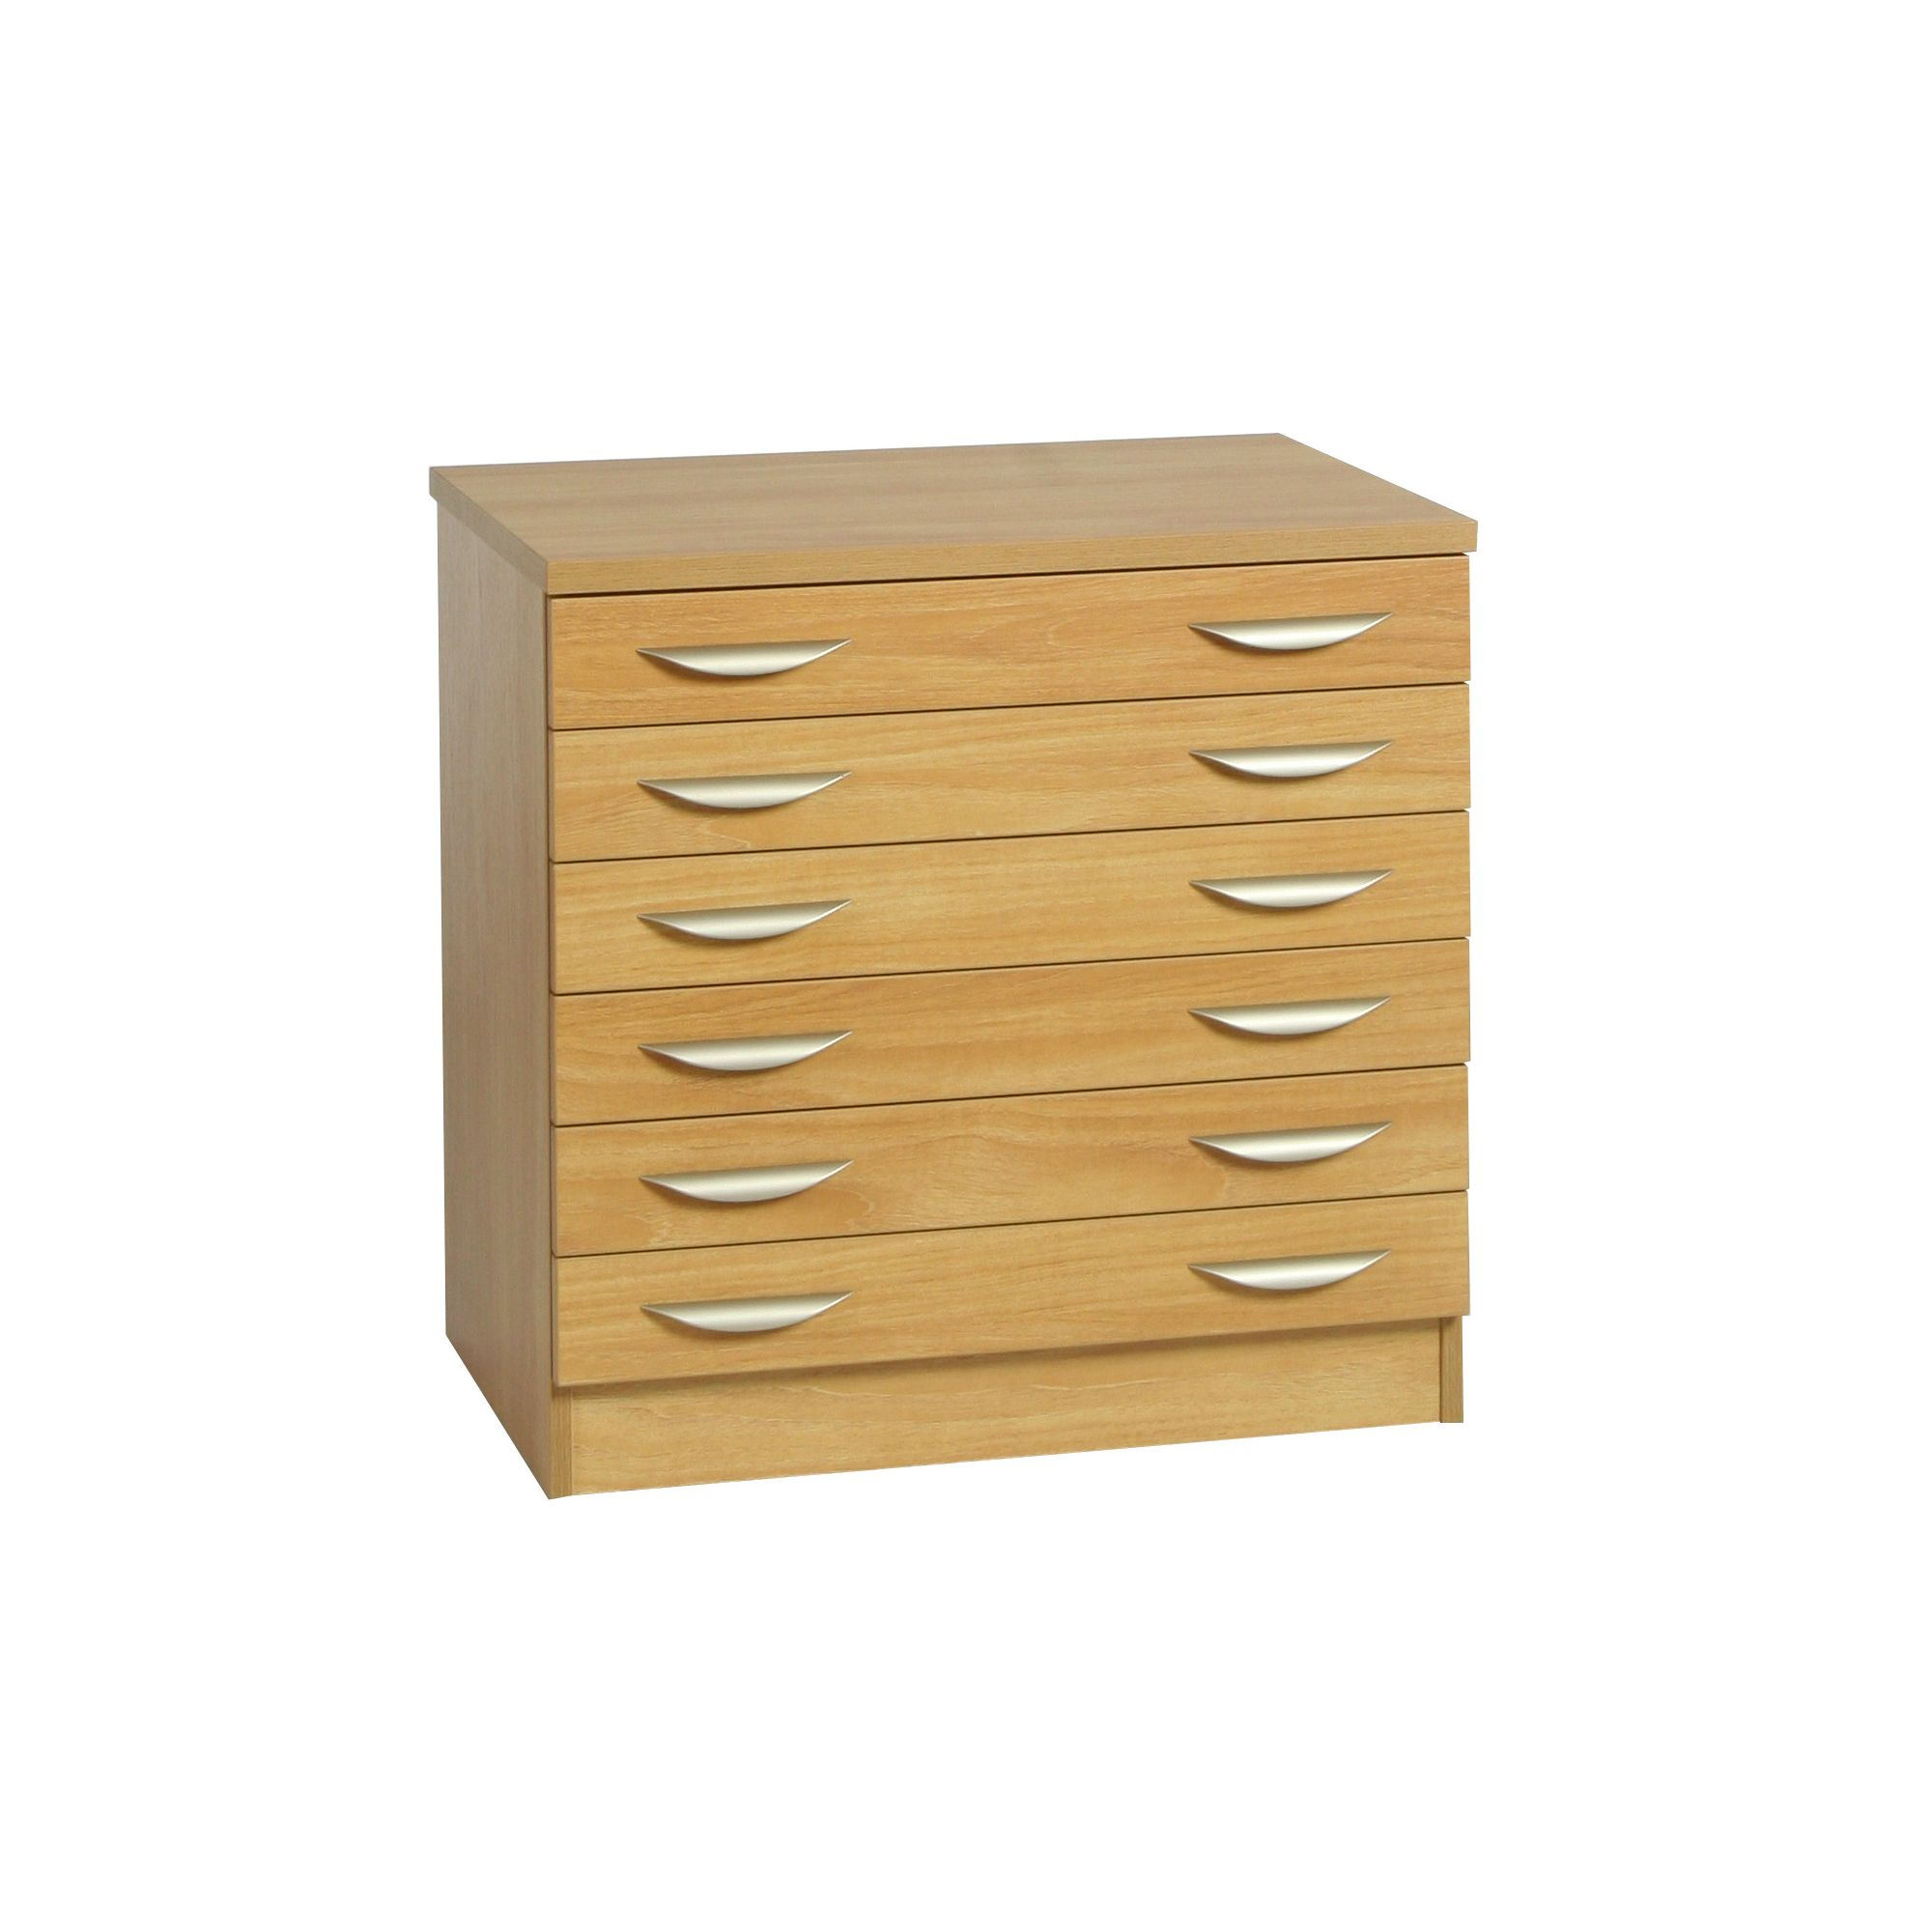 R White Cabinets Six Drawer Wooden Unit - English Oak at Tescos Direct